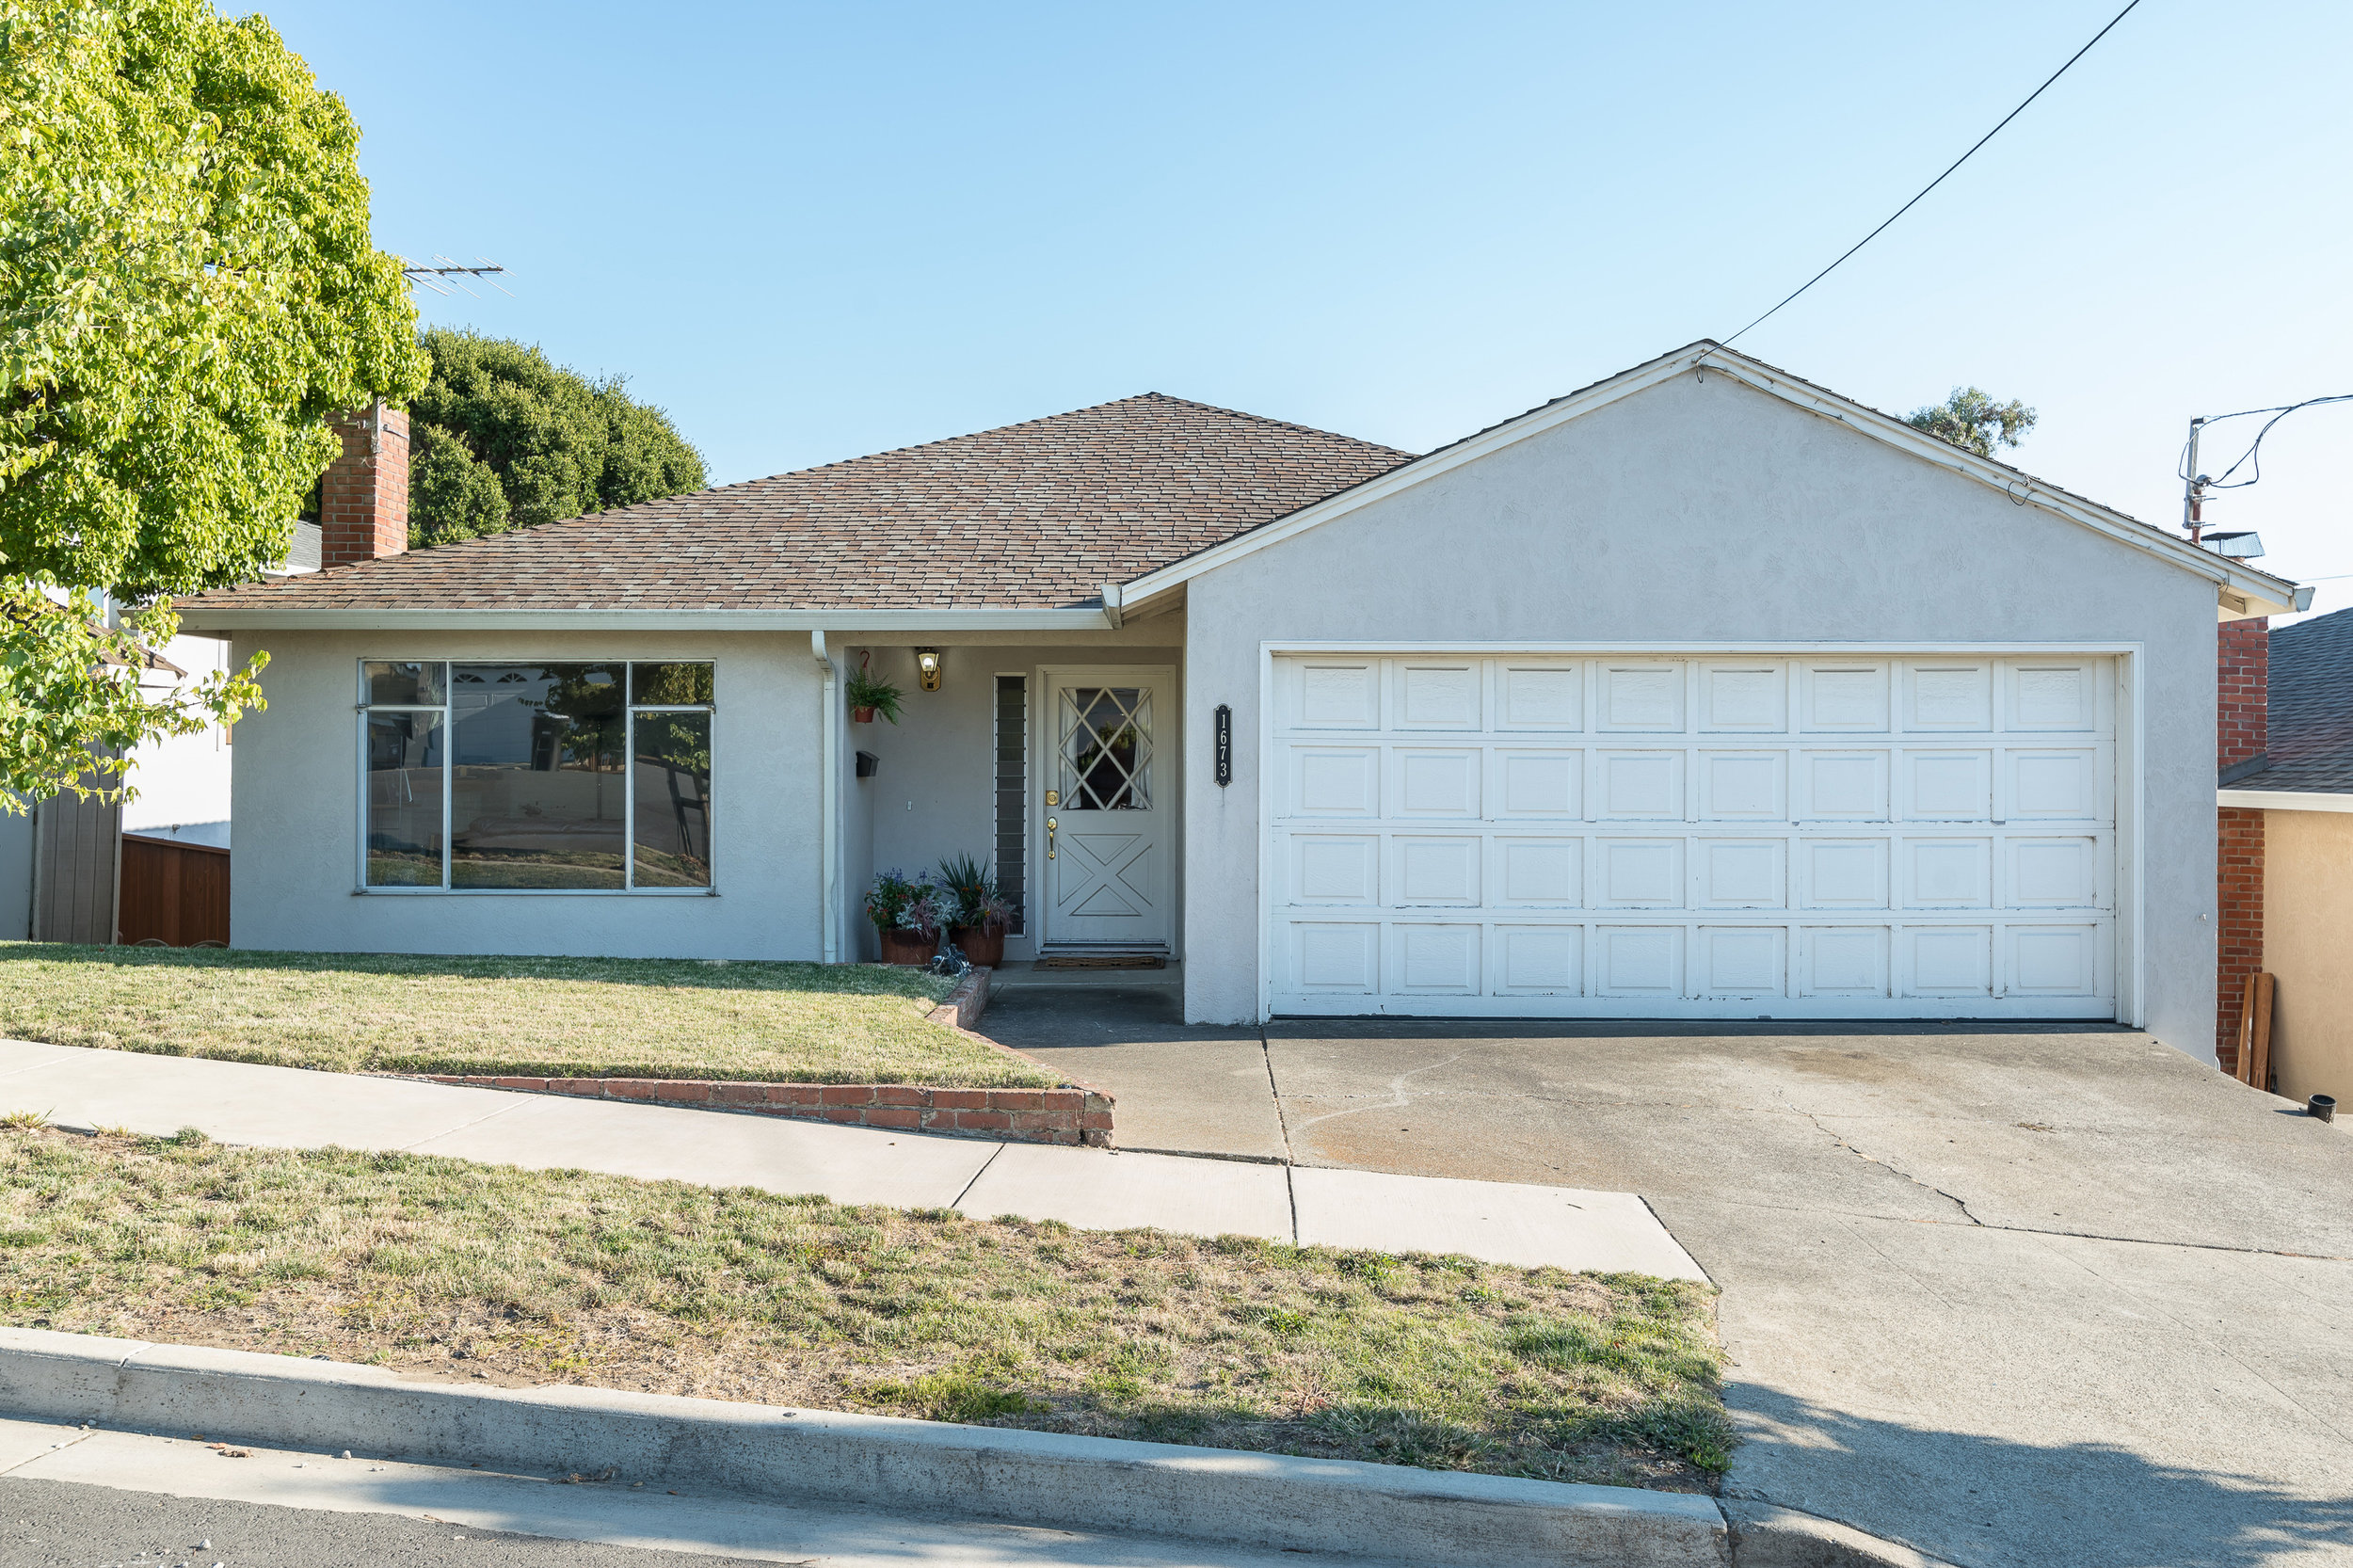 A great home in Hayward hills, near Cal State East Bay. Home features 3 bedrooms, 2 bathrooms, 2 car garage, and 1,944 square feet of living space, 7,000 square foot lot, built in 1959. It has a great open remodeled kitchen, with Shaker style  cabinets, recessed lighting, hard wood flooring, granite  counters, stainless steel appliances, Viking Stove and a large butcher block island, with sink. Lots of storage in kitchen and throughout the home. Master bedroom has a large walk in closet and bathroom. Downstairs has a large bedroom and rumpus room, plus potential wine cellar. Large open backyard with view of open space and trees.